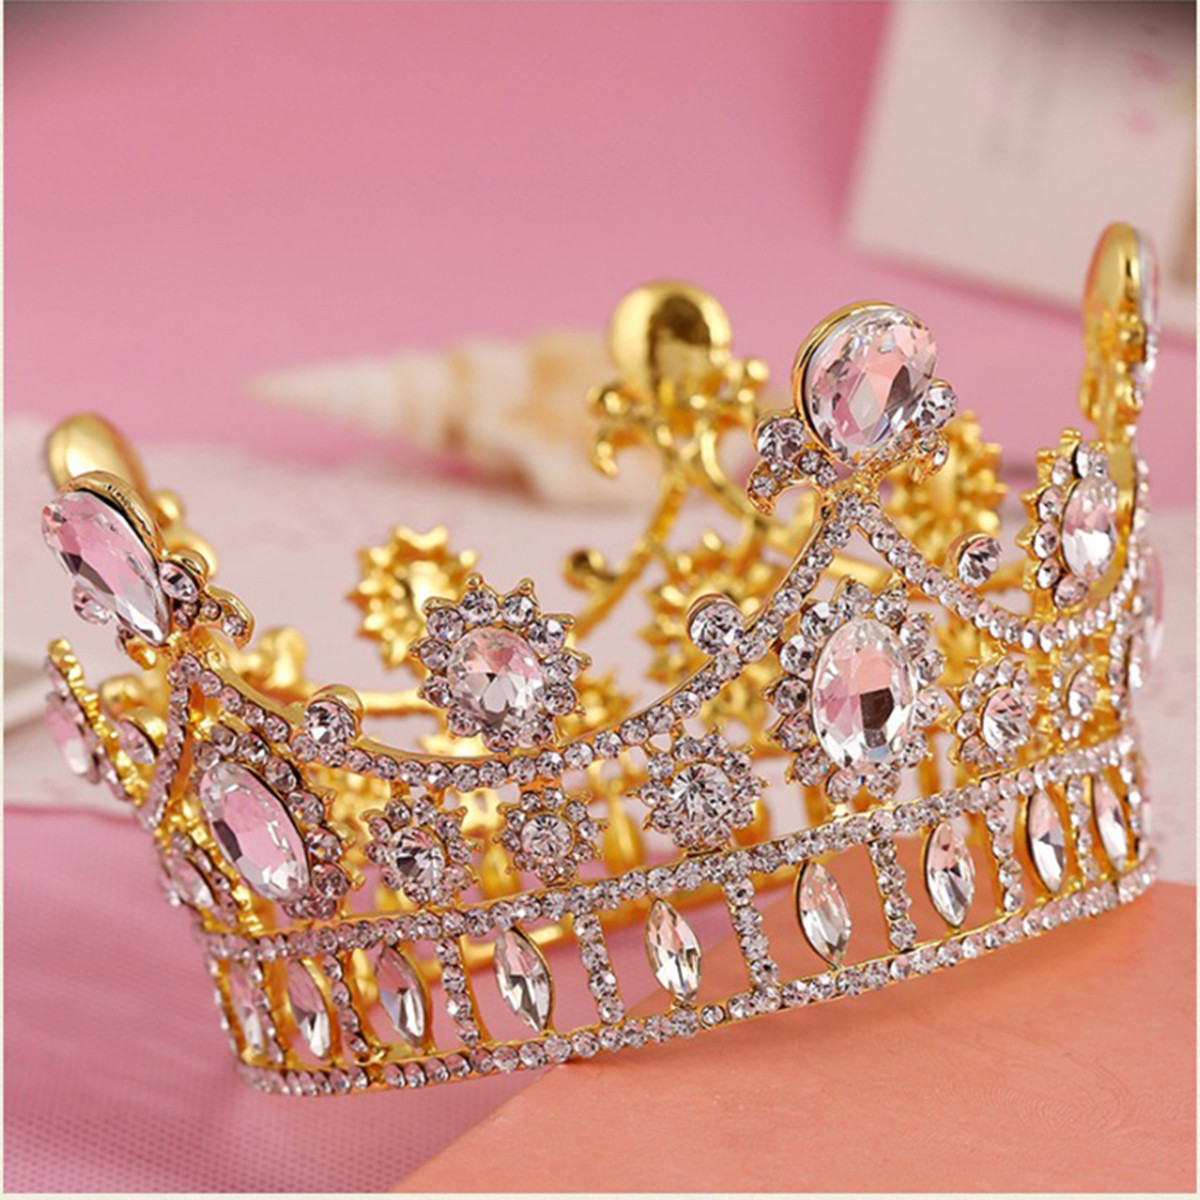 Bride Gold Princess Queen Crystal Rhinestone Tiara Crown Wedding Bridal Prom Party Headbrand